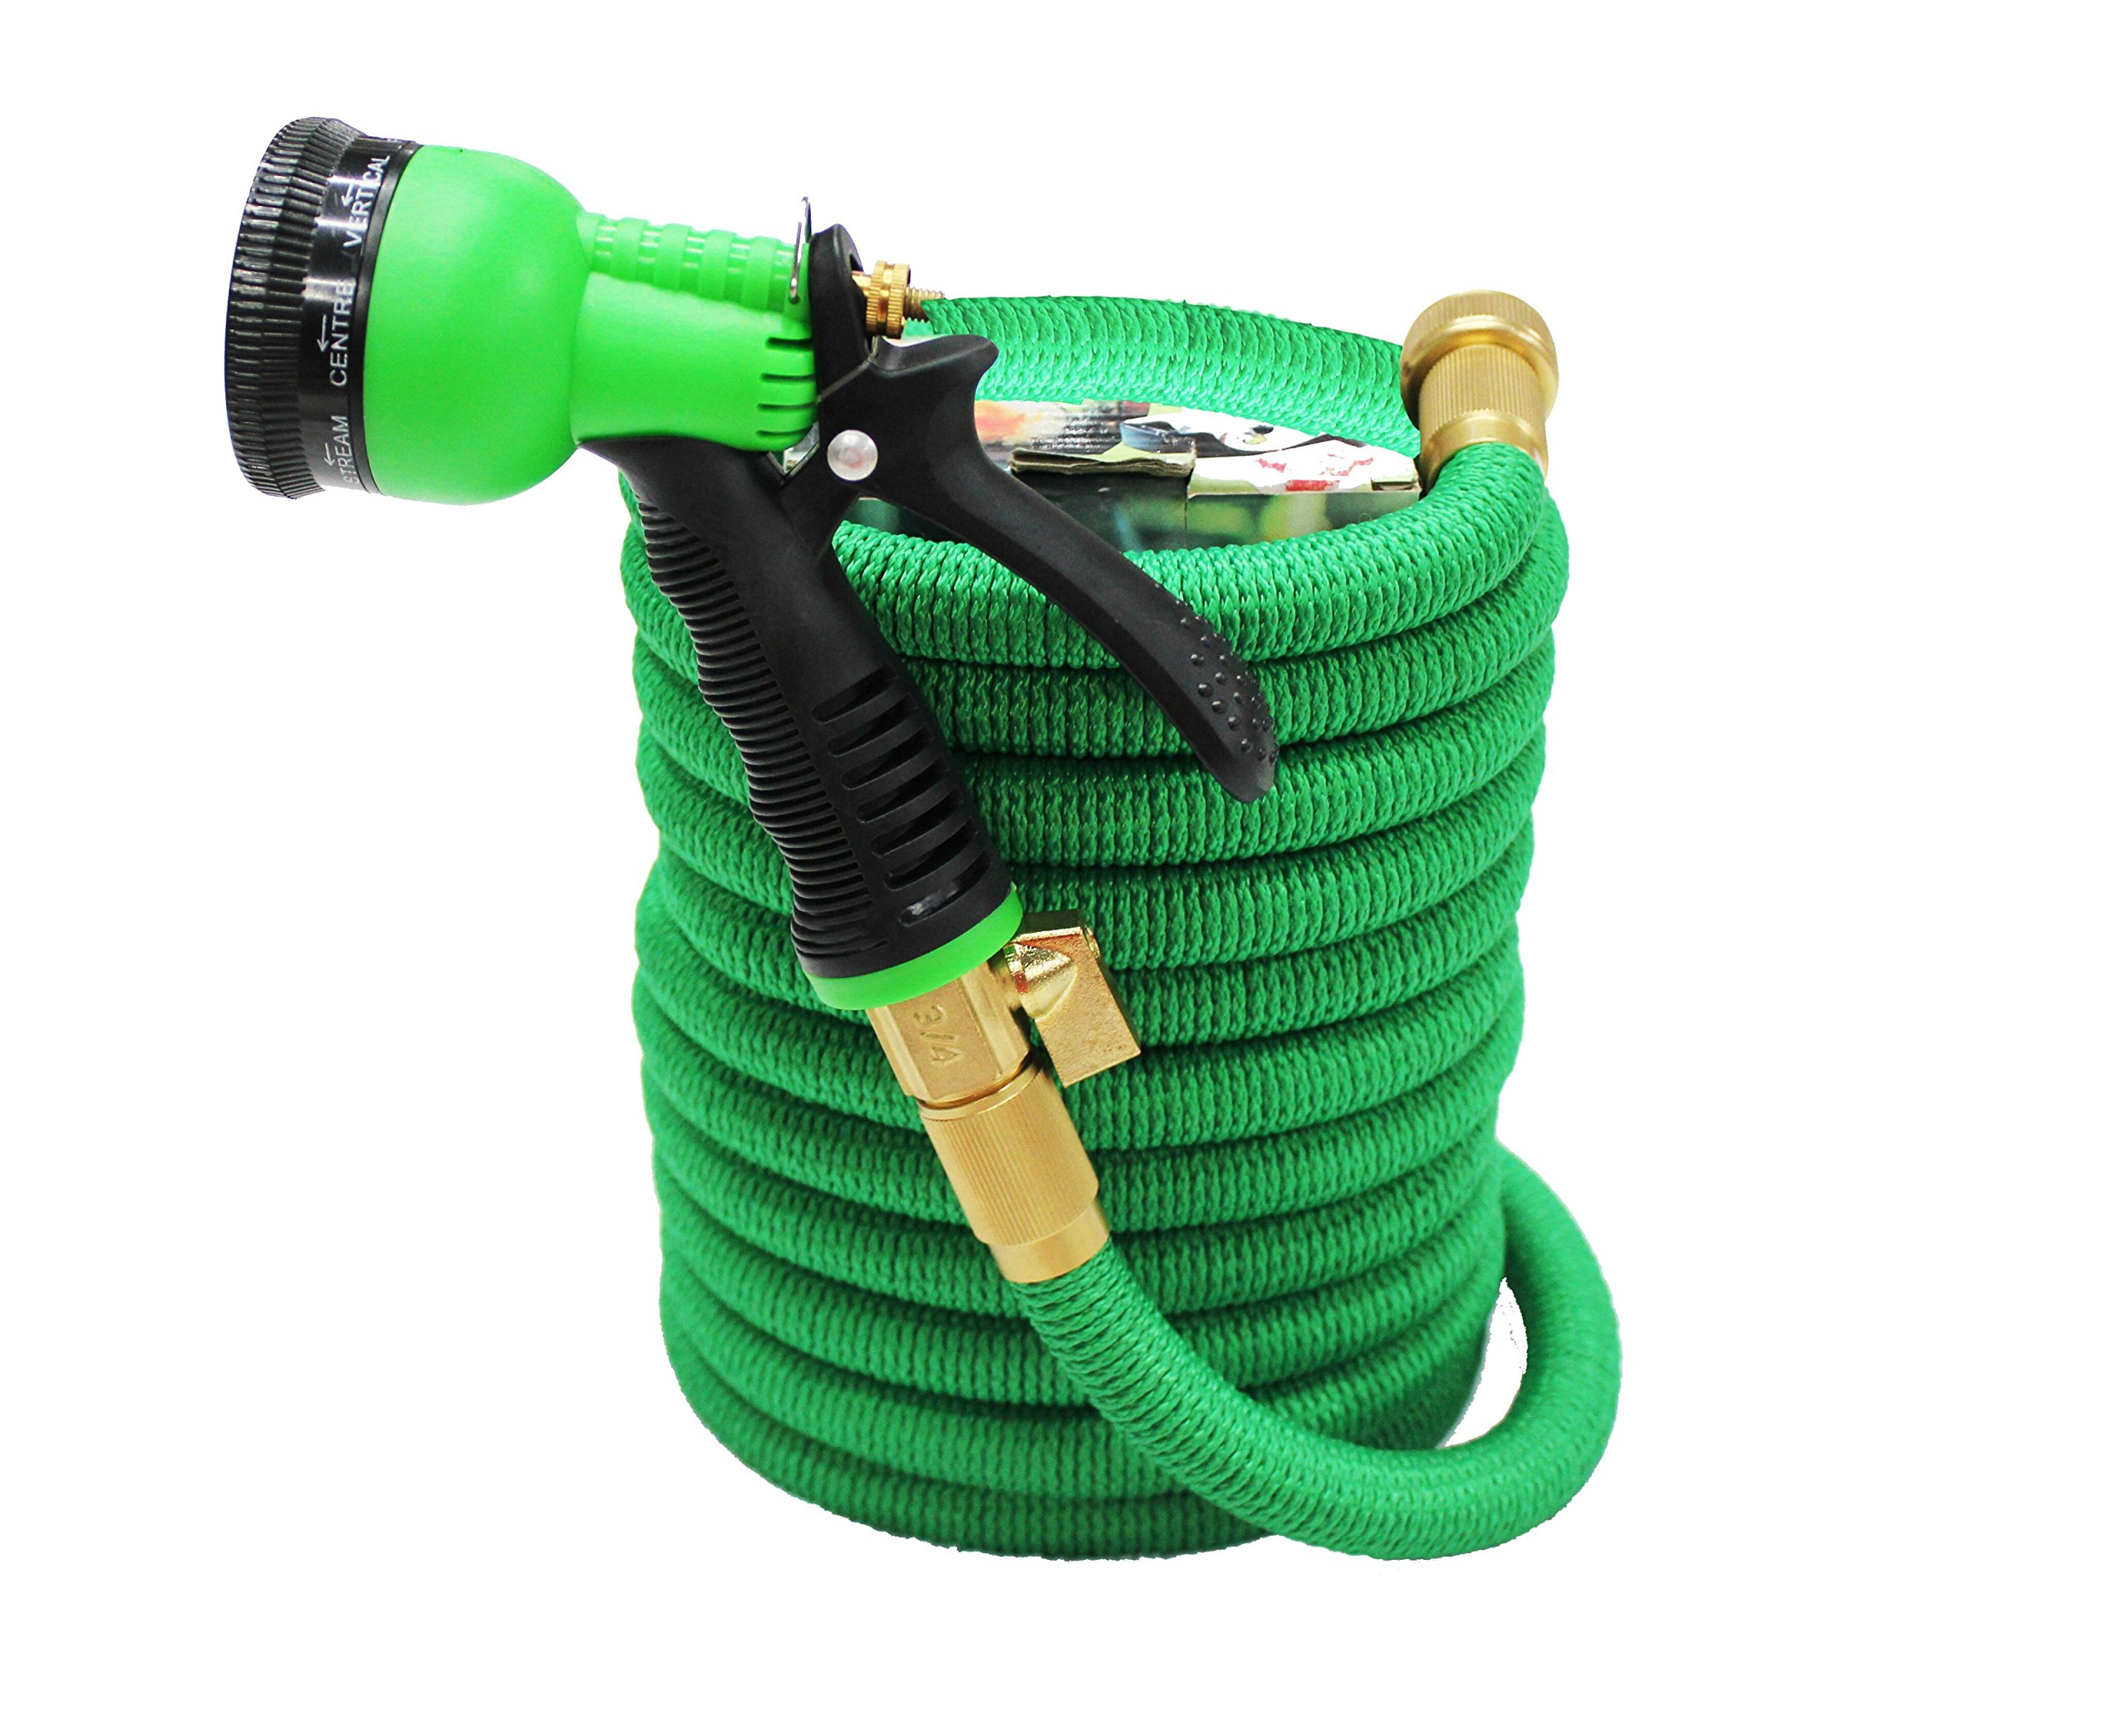 Expandable Garden Hose – 50 Feet Expandable Garden Hose – 8 Setting Spray Head Hose – For Gardening and Car Washing – Lightweight and Flexible – Easy to Use & Strong Webbing